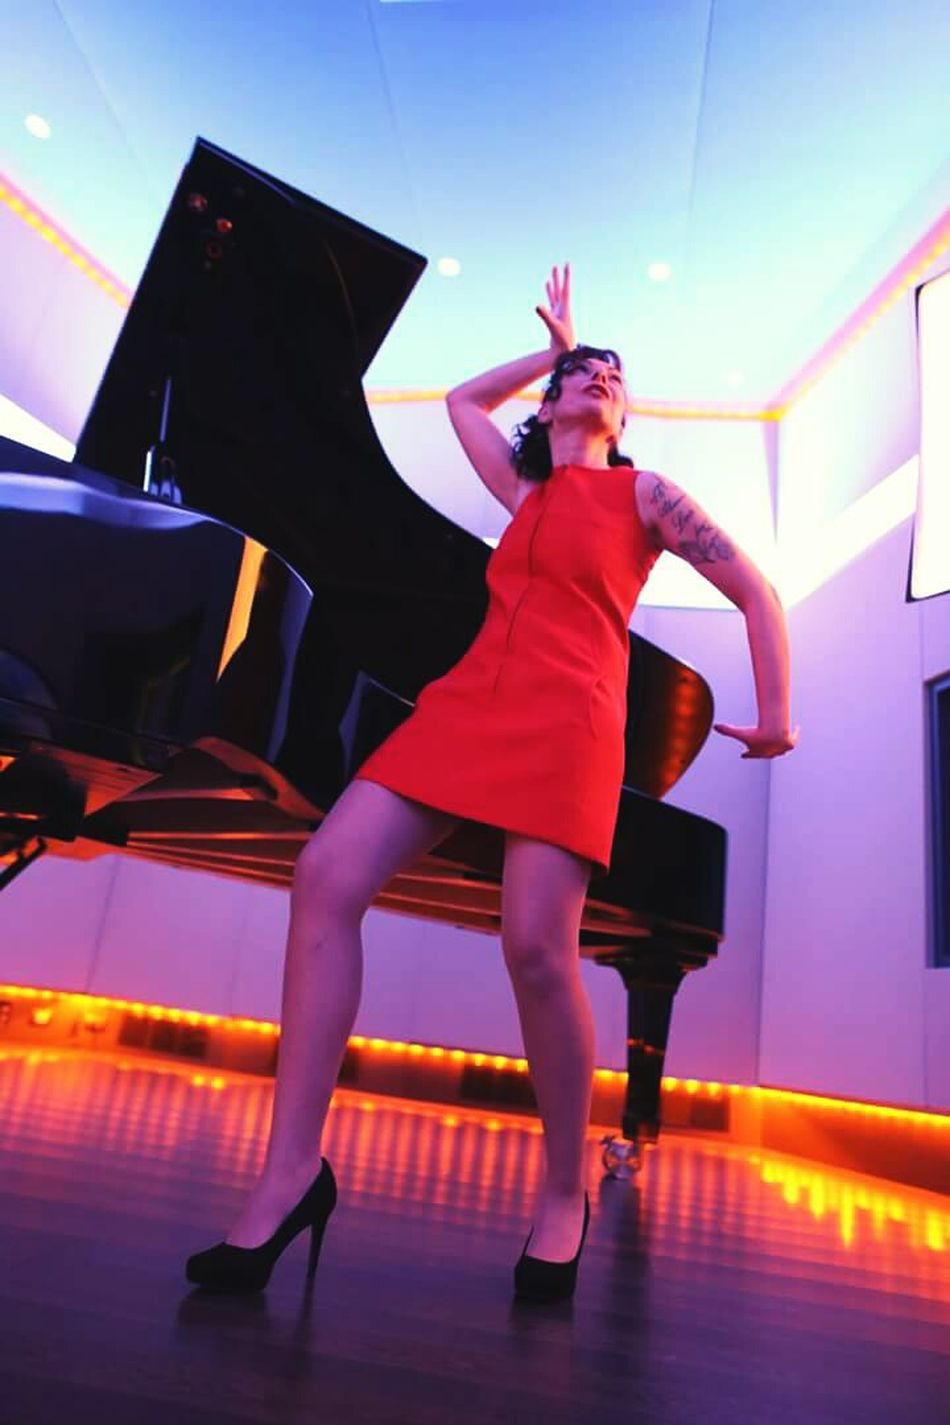 Piano Moments Twiggy  One Woman Only Model Italian Model Piano Sixties Rock'n'Roll Music Dance Red Recording Studio Glamour Women People